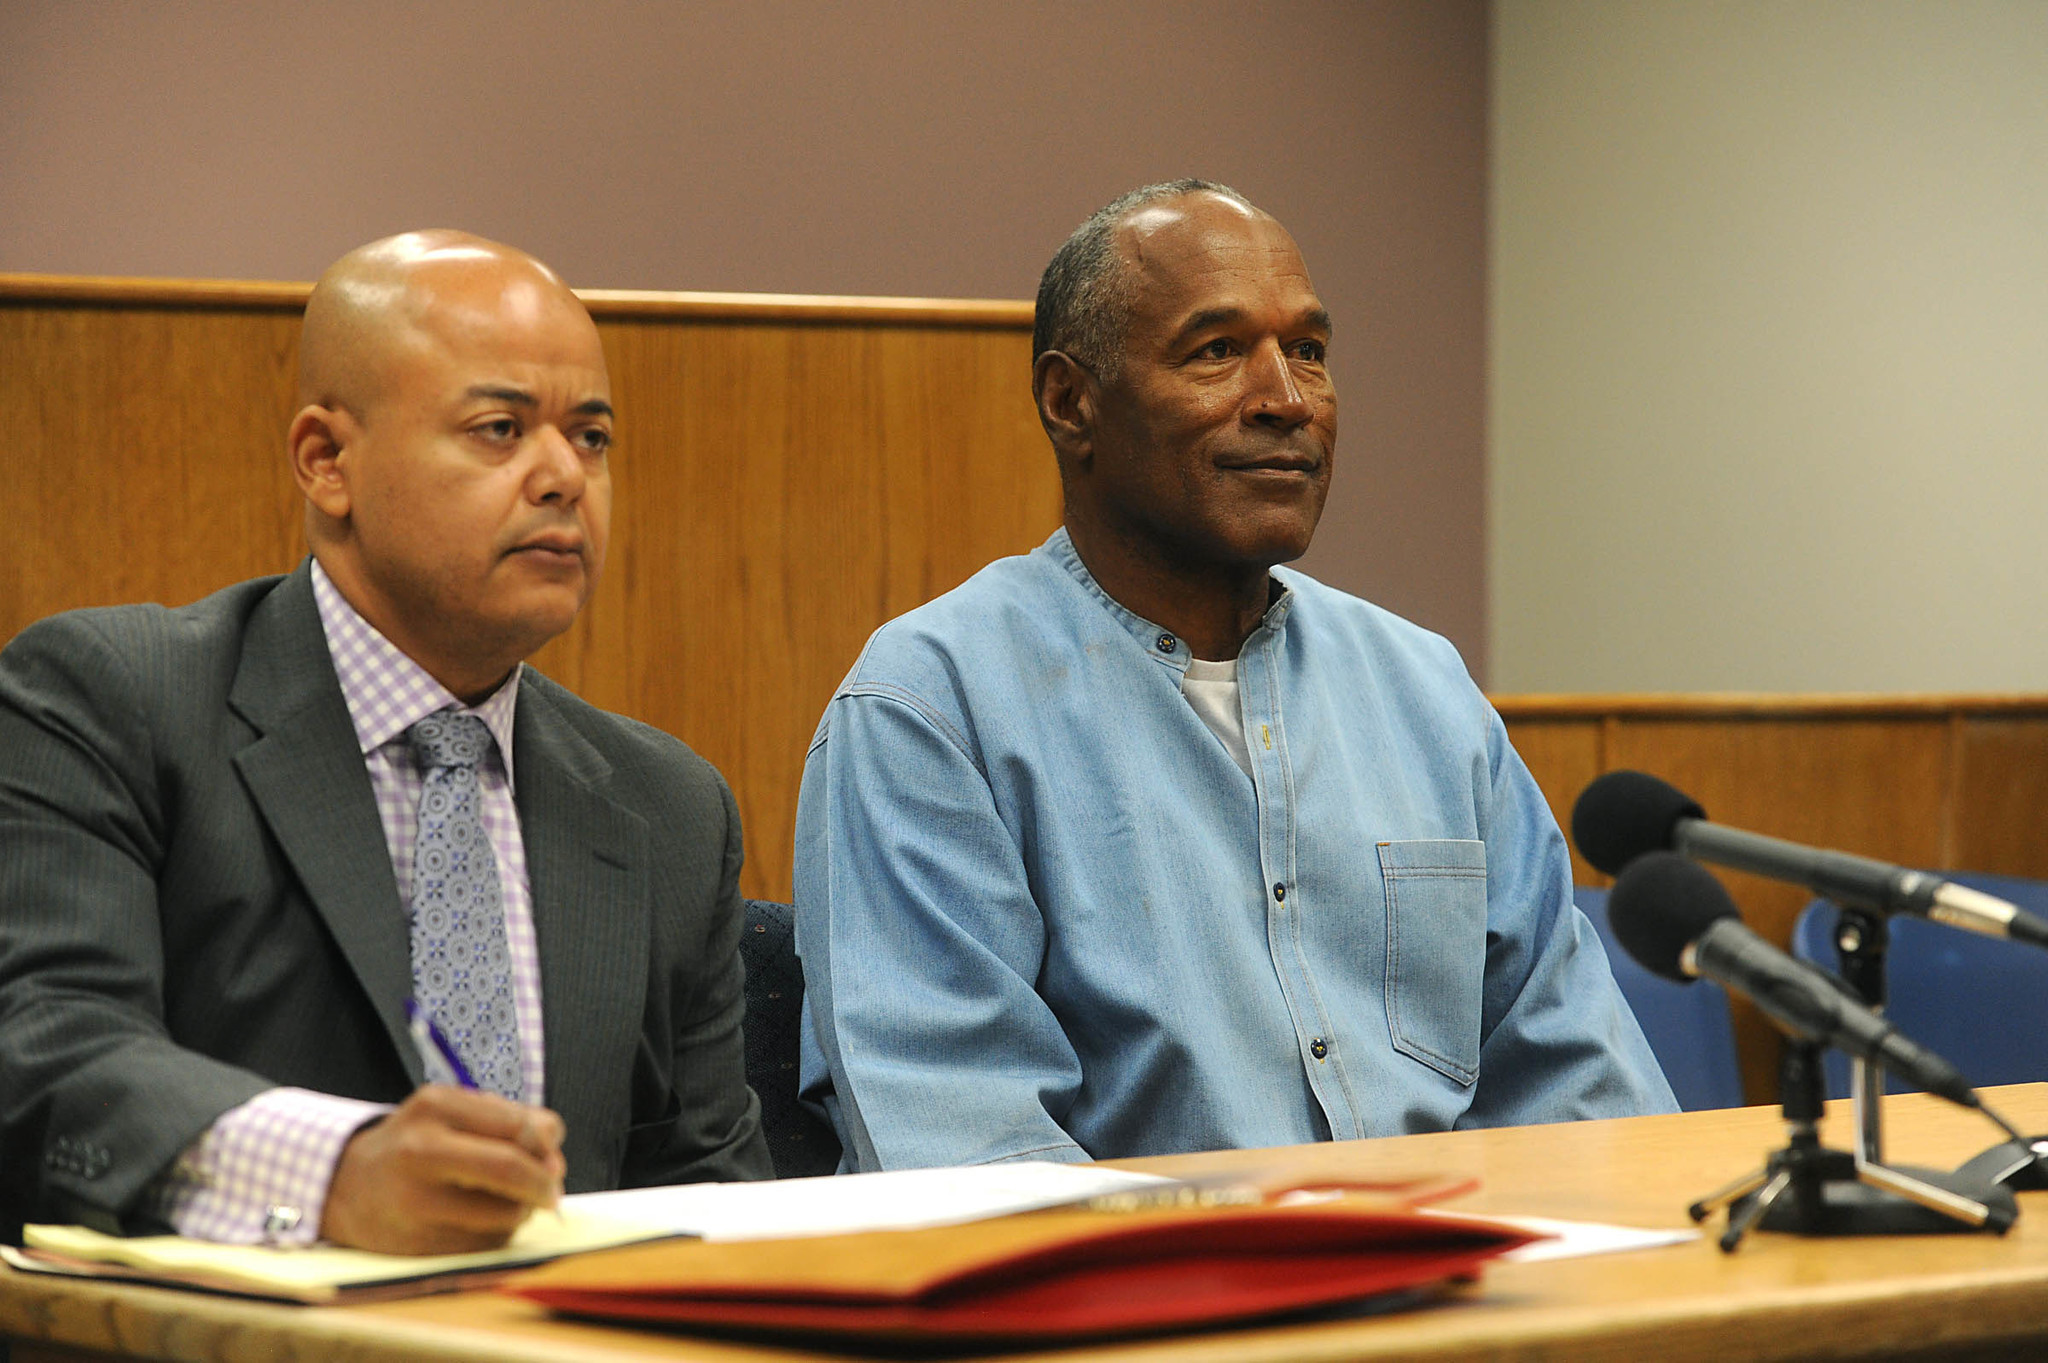 'Tiger King' fan O.J. Simpson weighs in: He's 'tiger sashimi right now'